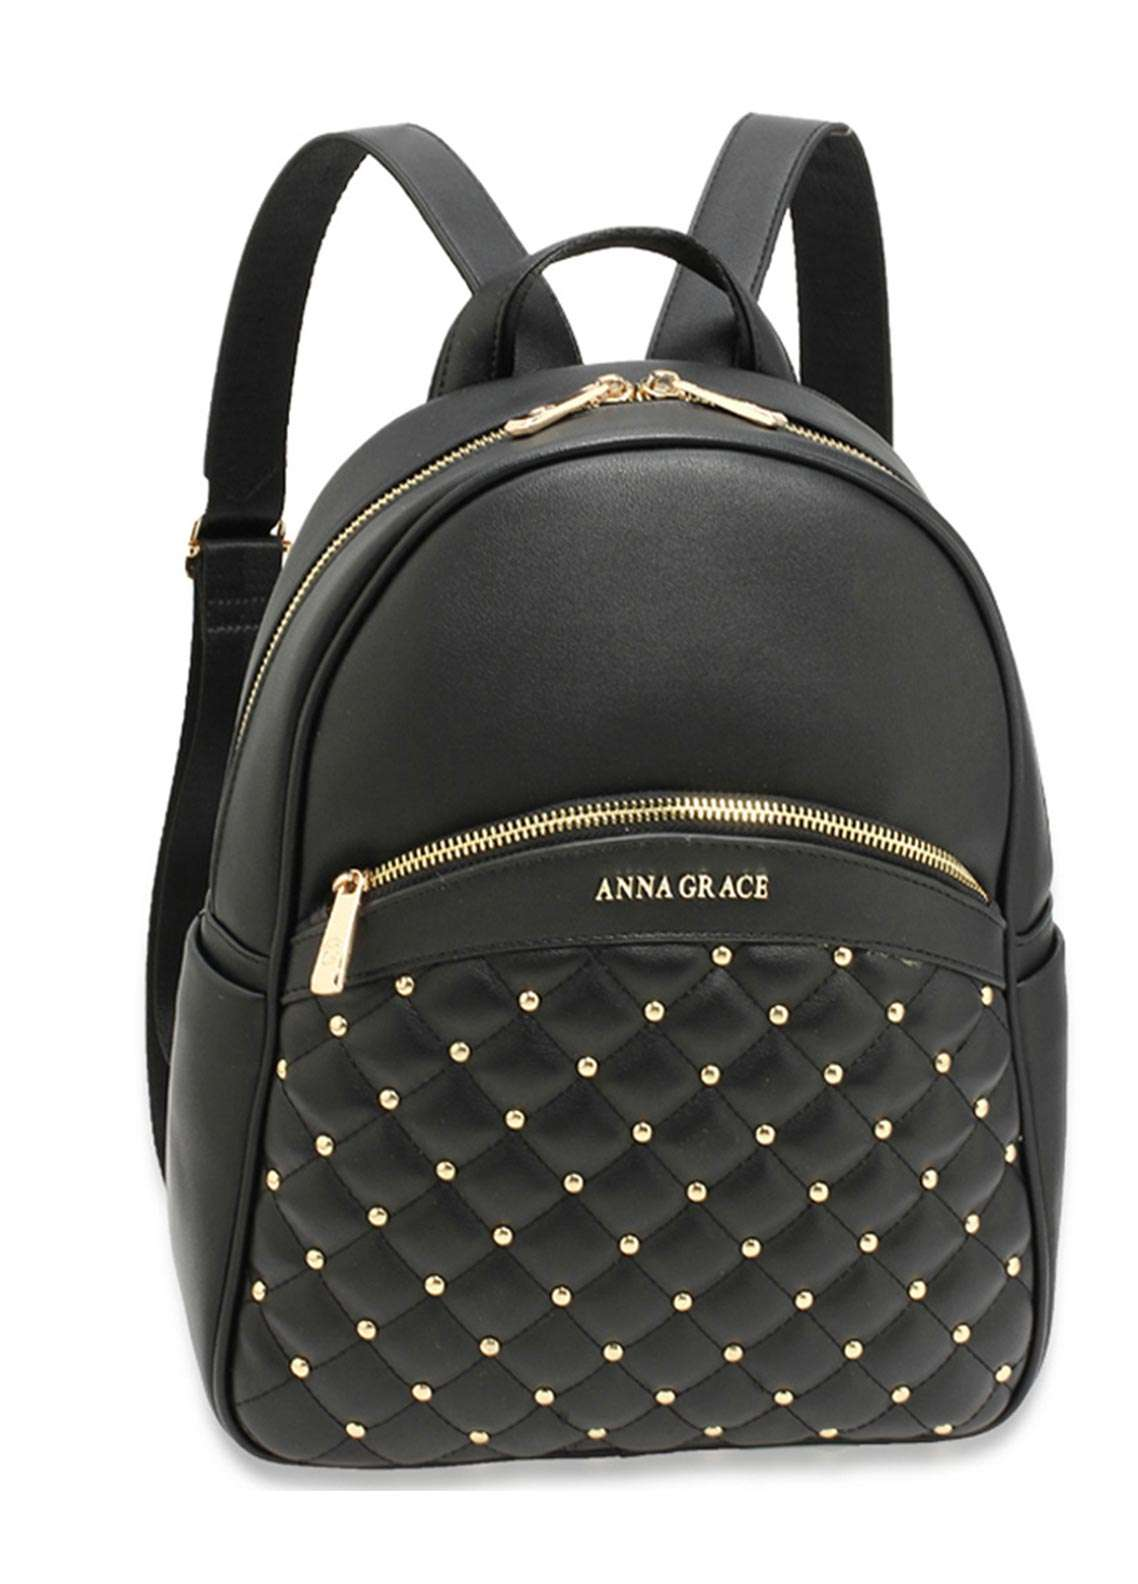 Anna Grace London Faux Leather Backpack Bags  for Women  Black with Smooth Texture